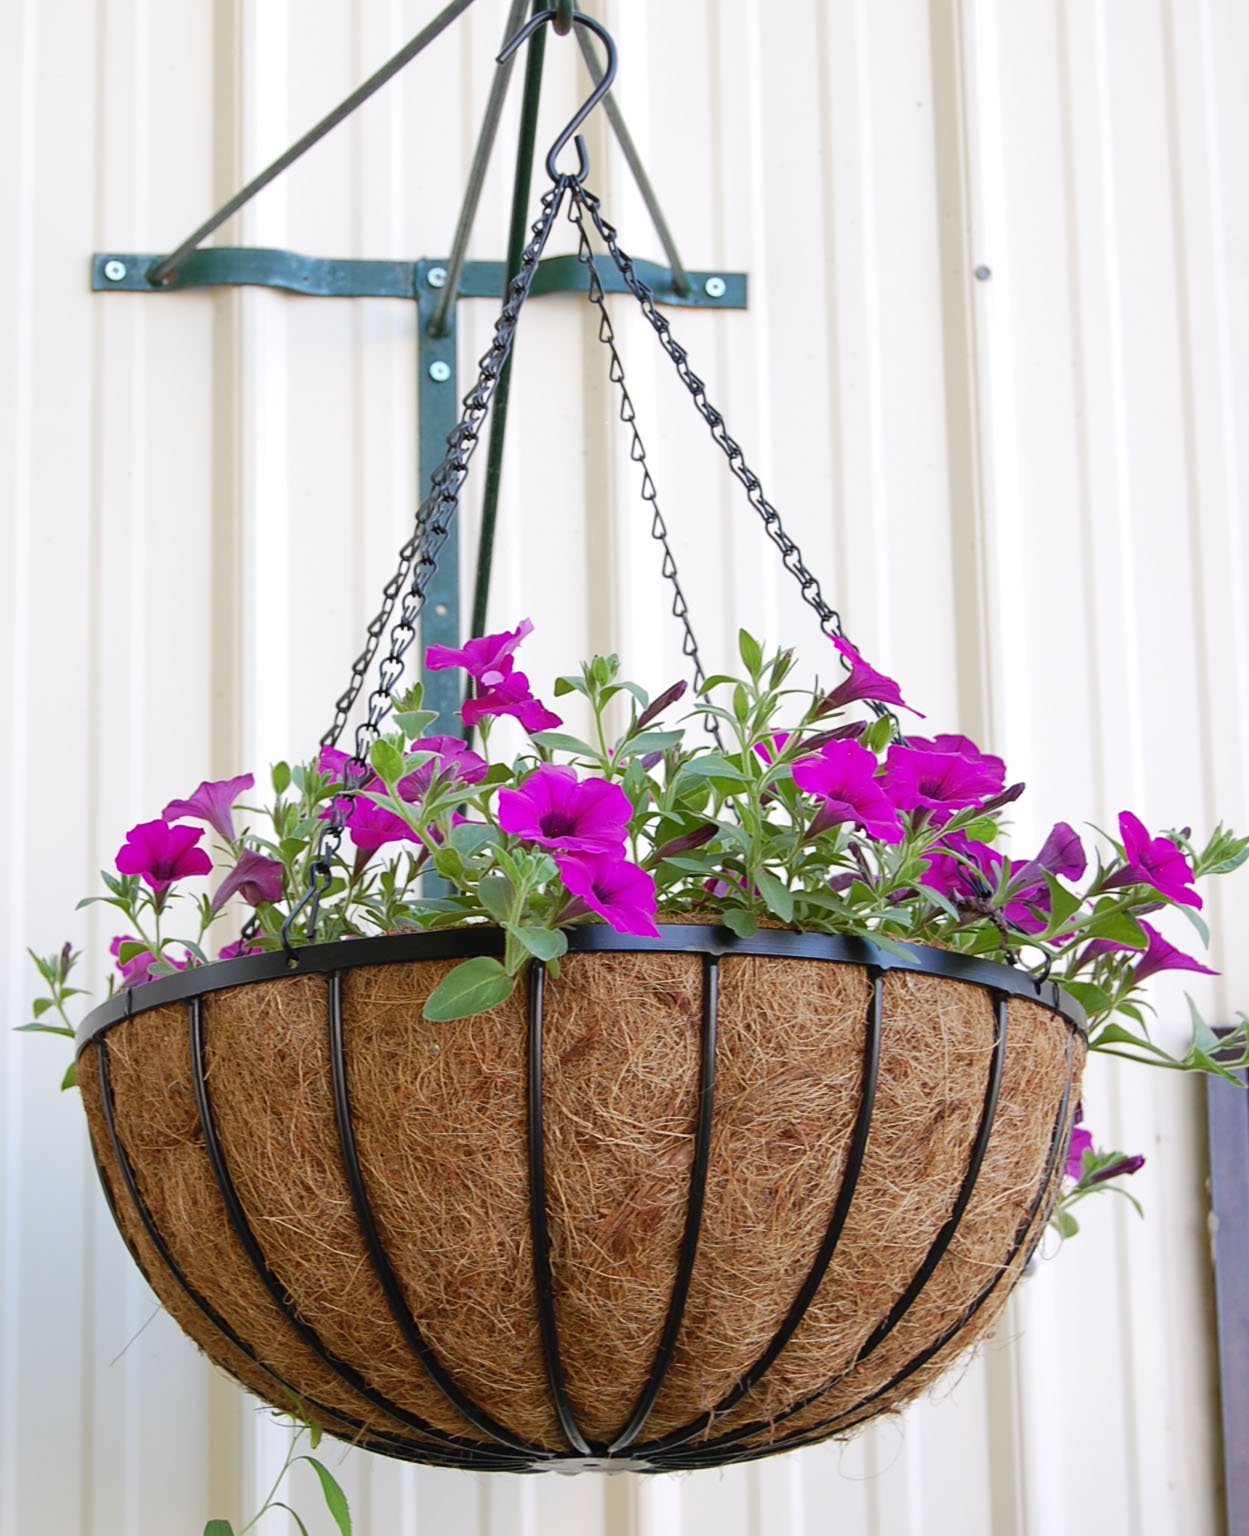 24'' Georgian Rigid Iron Hanging Basket (C960-5) with Coco Moss Liner - 5 Set Pack by Topiary Art Works